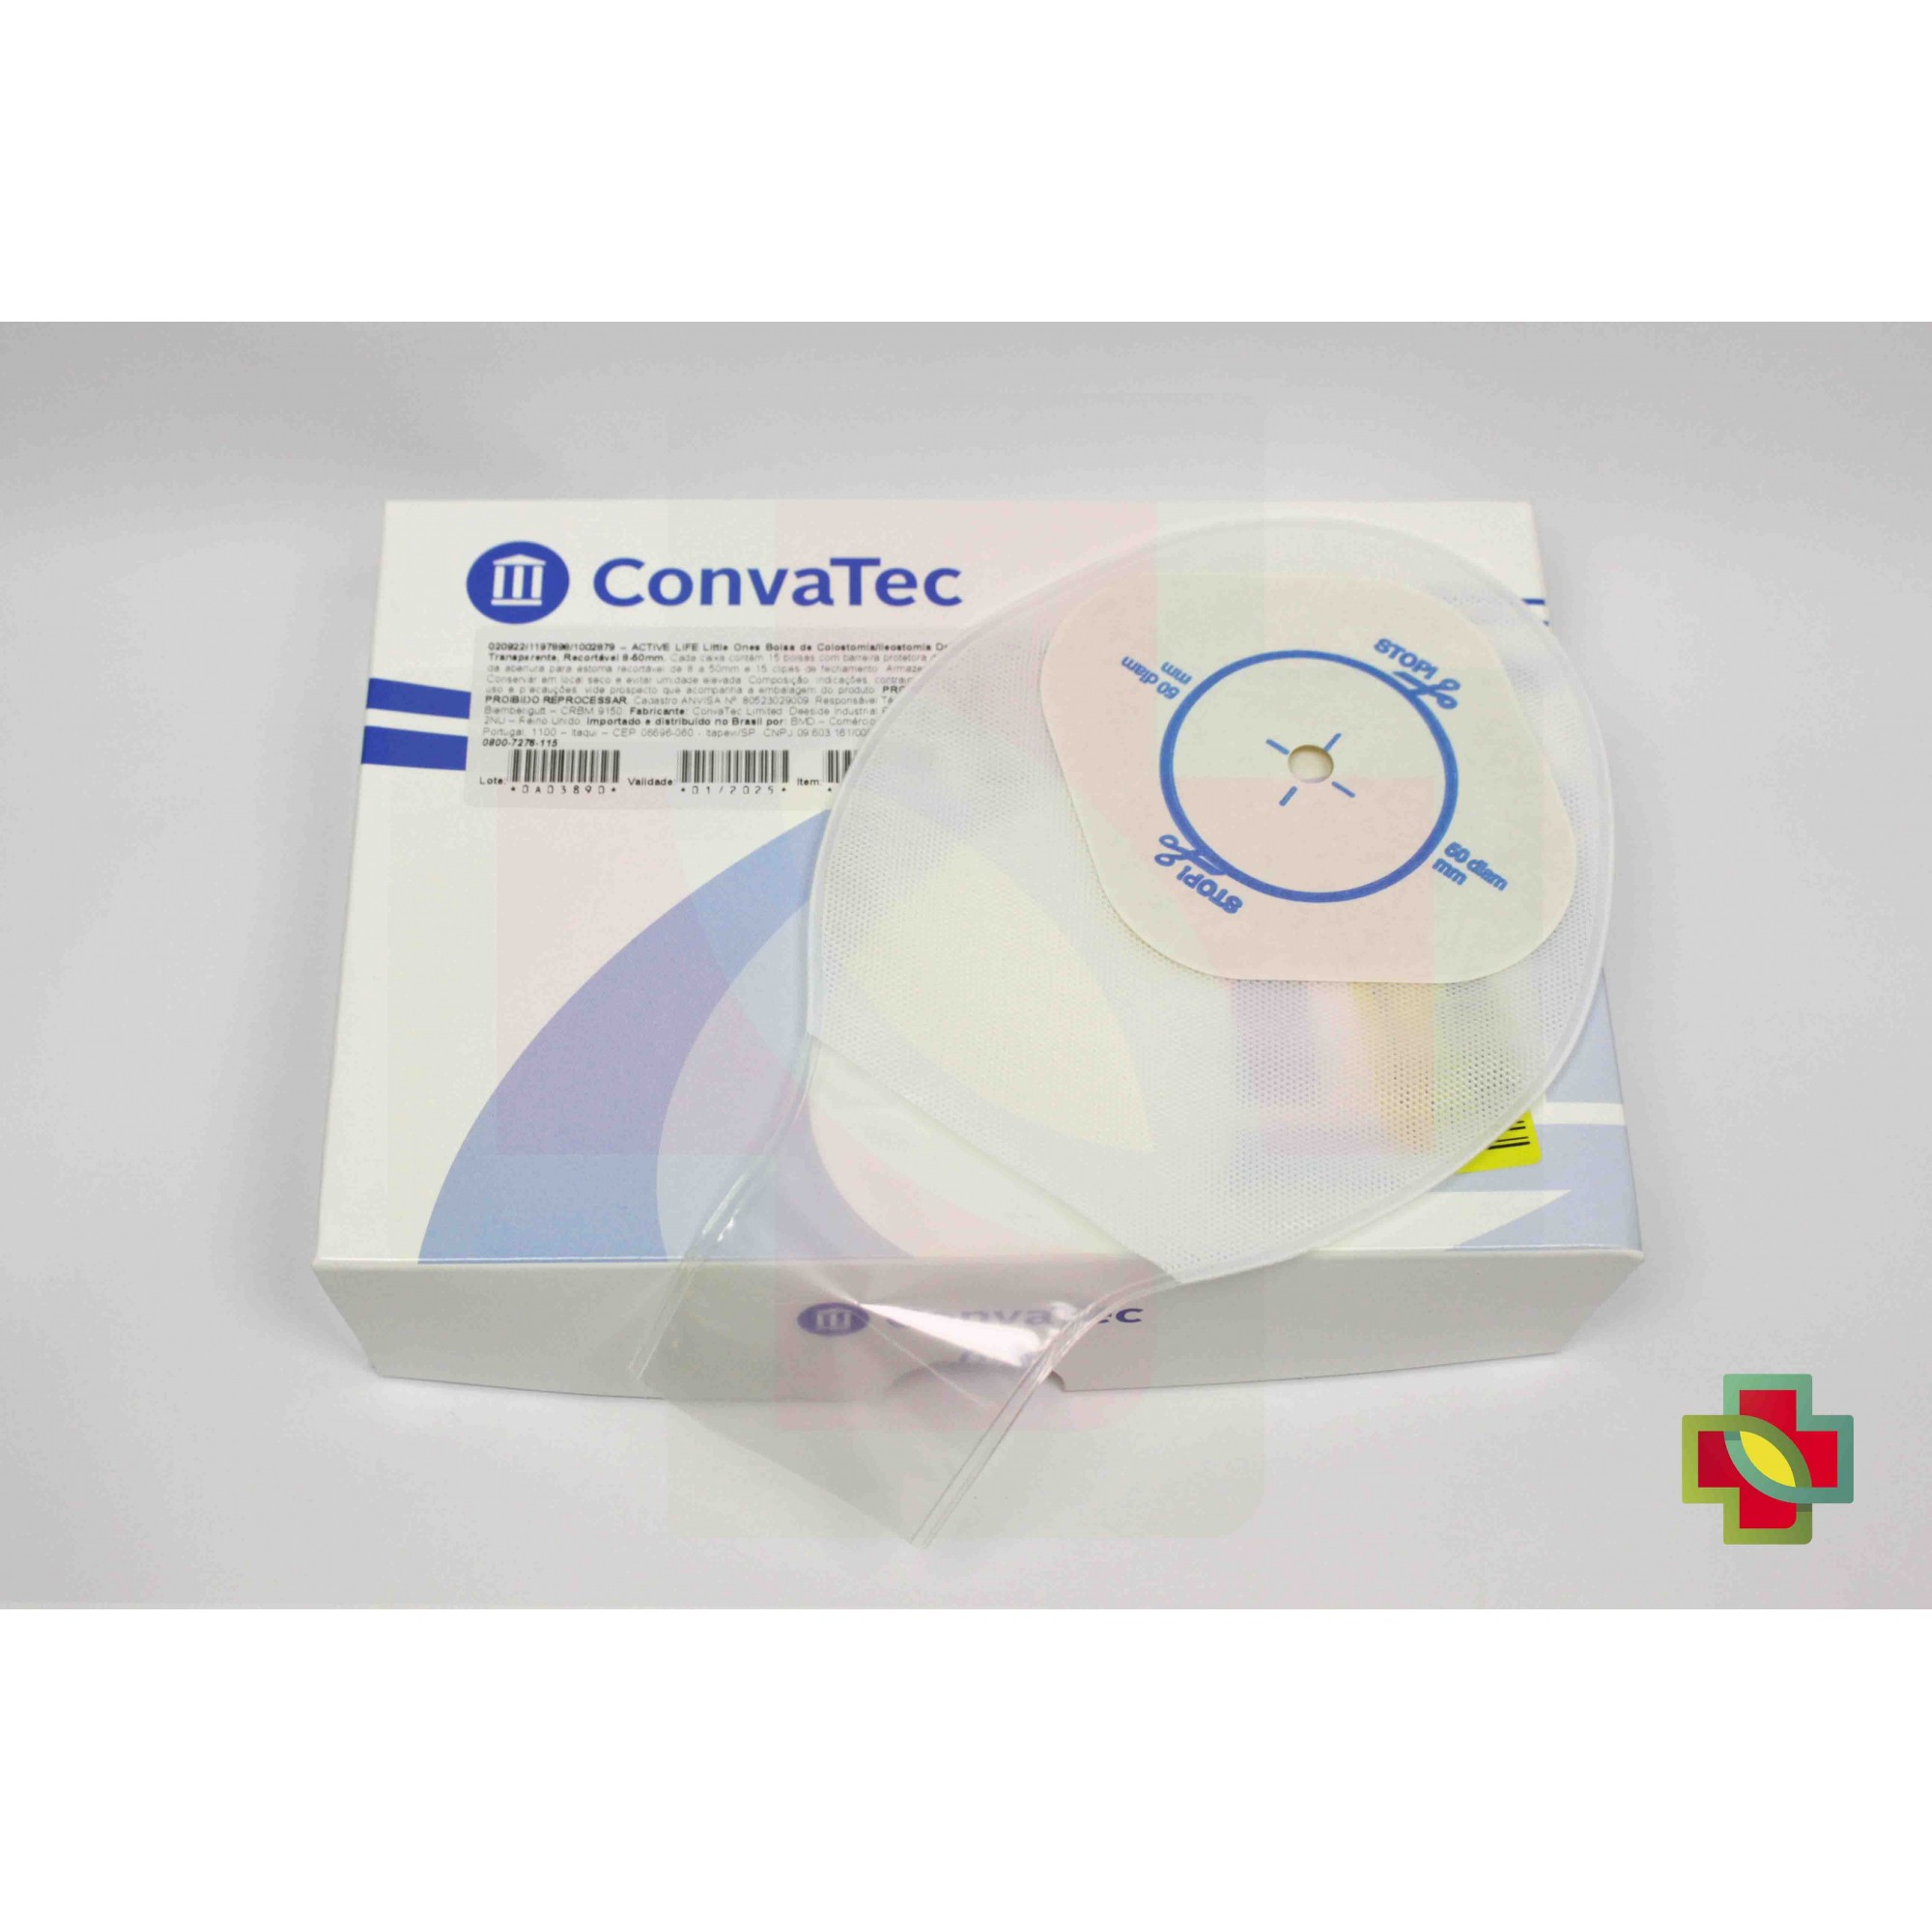 BOLSA DE COLOSTOMIA 8-50MM LITTLE ONES INF TRANSP 1197898 CONVATEC